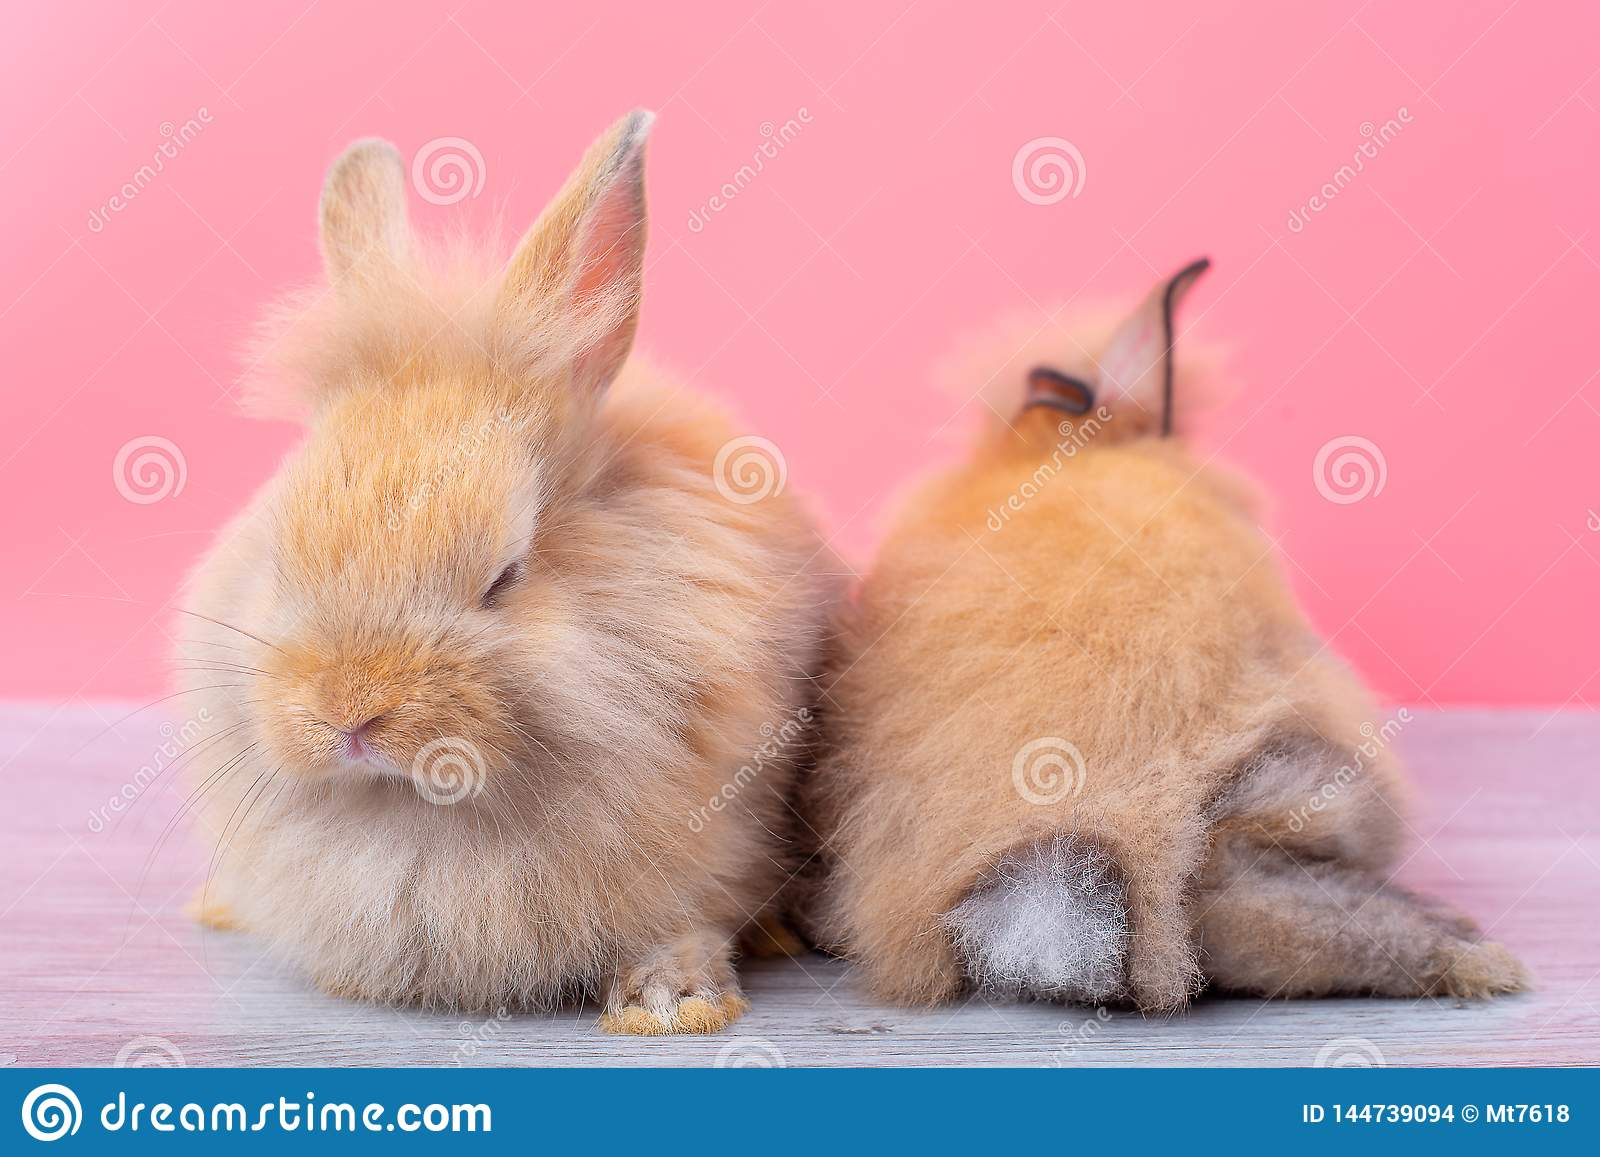 Couple small light brown rabbits stay on gray wood table and pink background with one is sleeping and the other show back of the